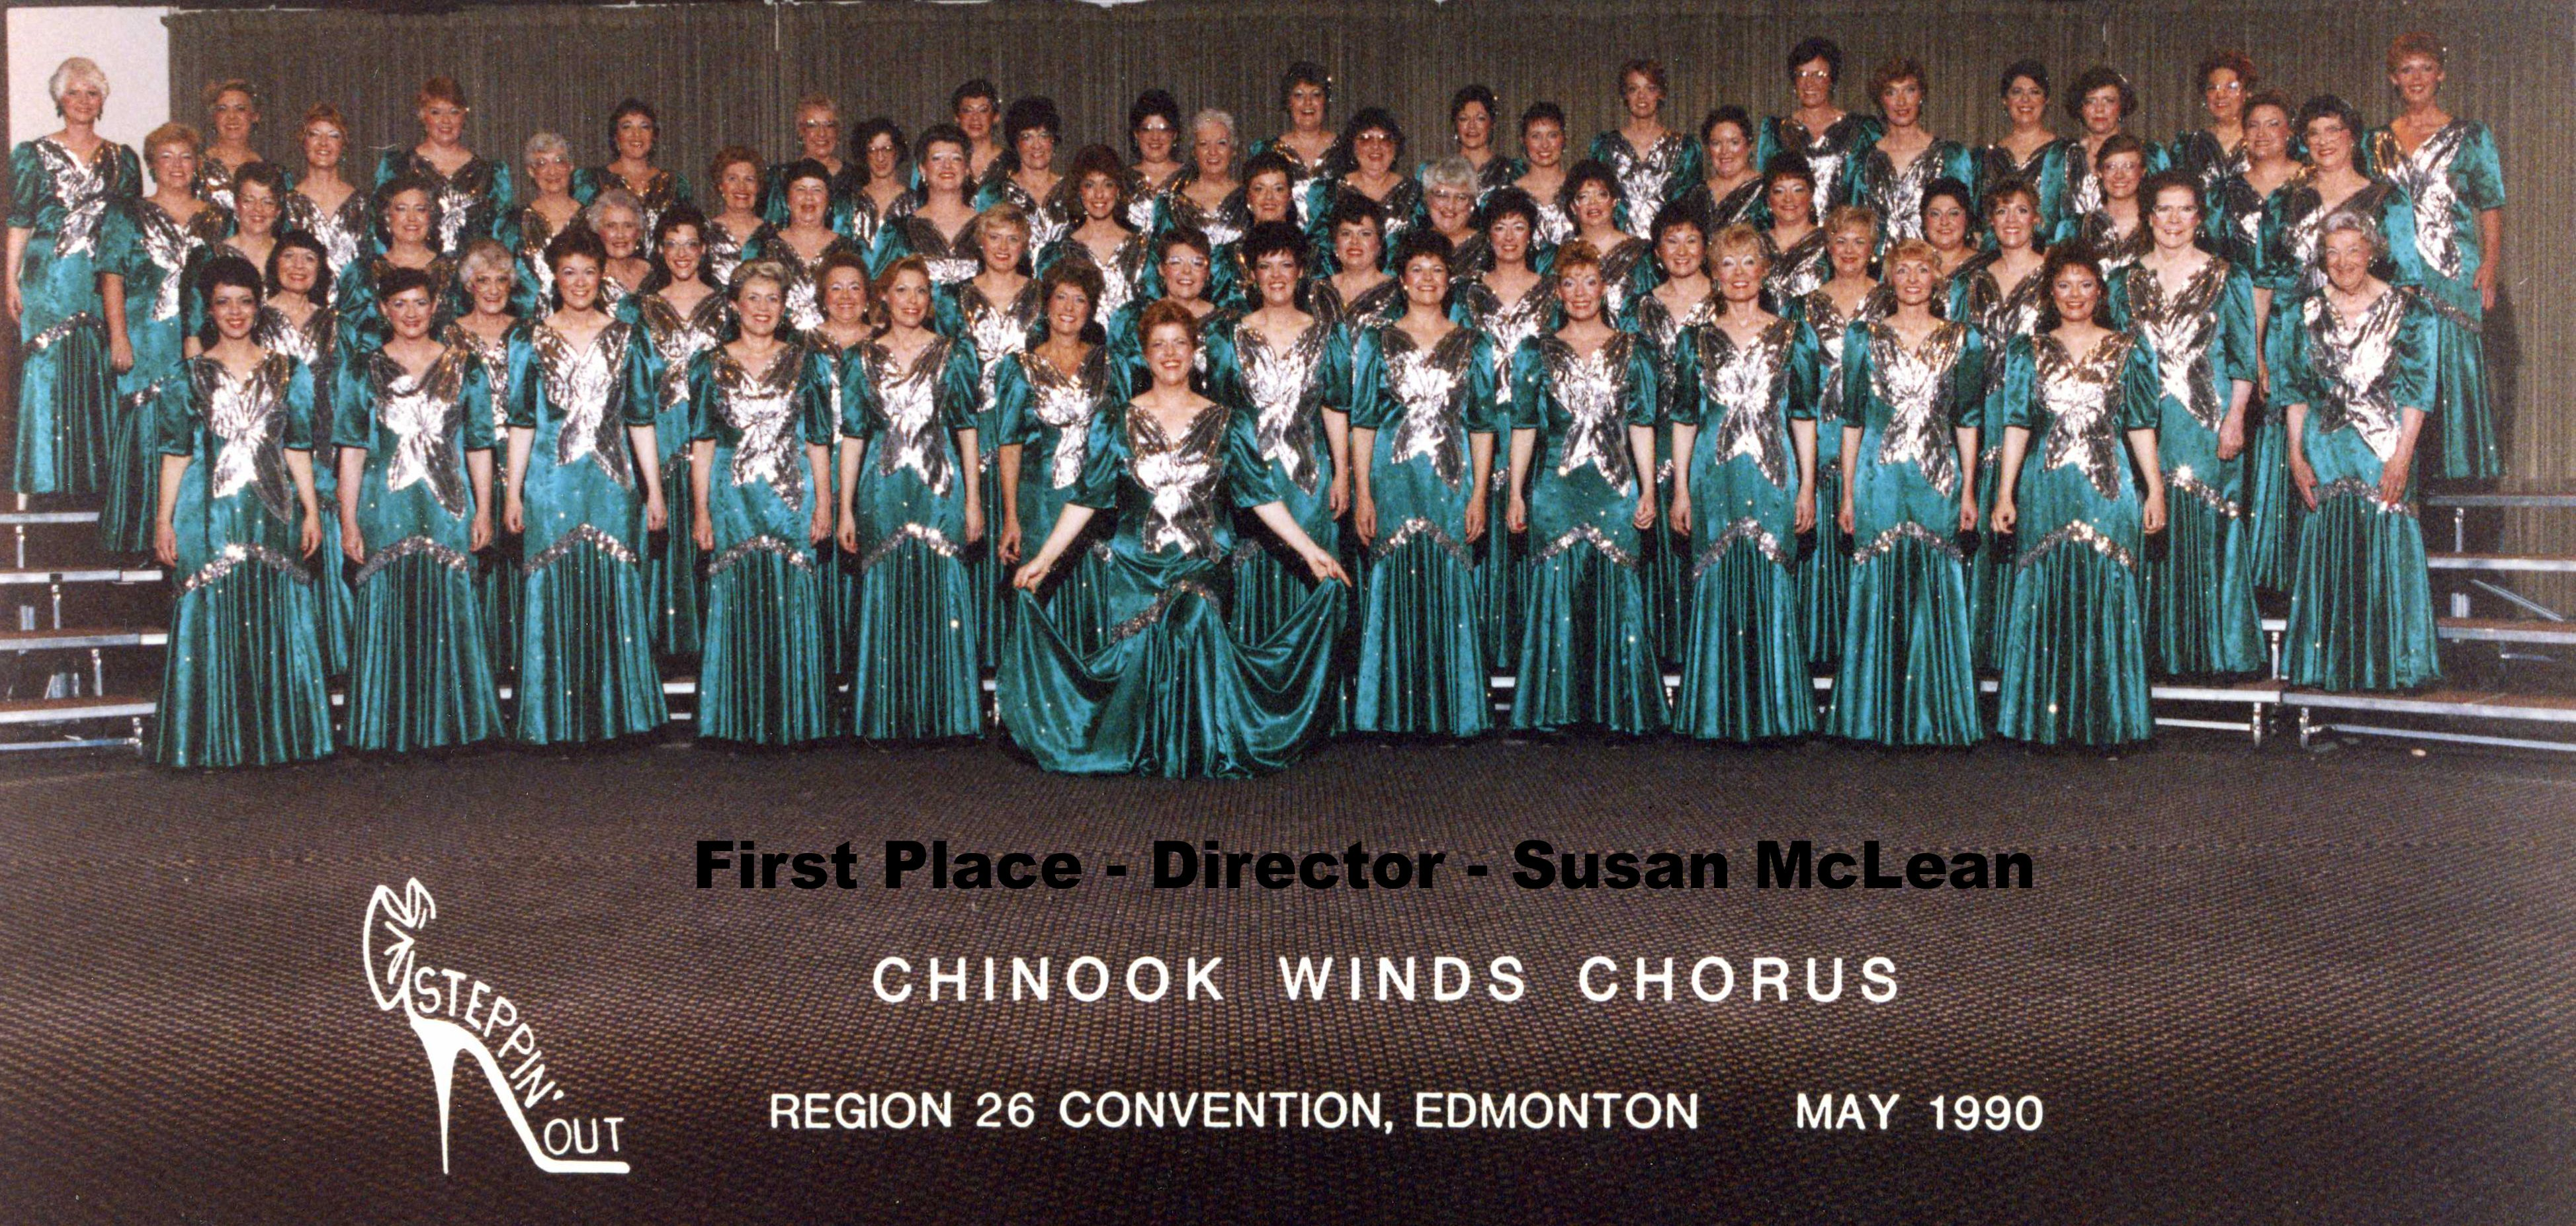 Chinook Winds Chorus First Place 1990